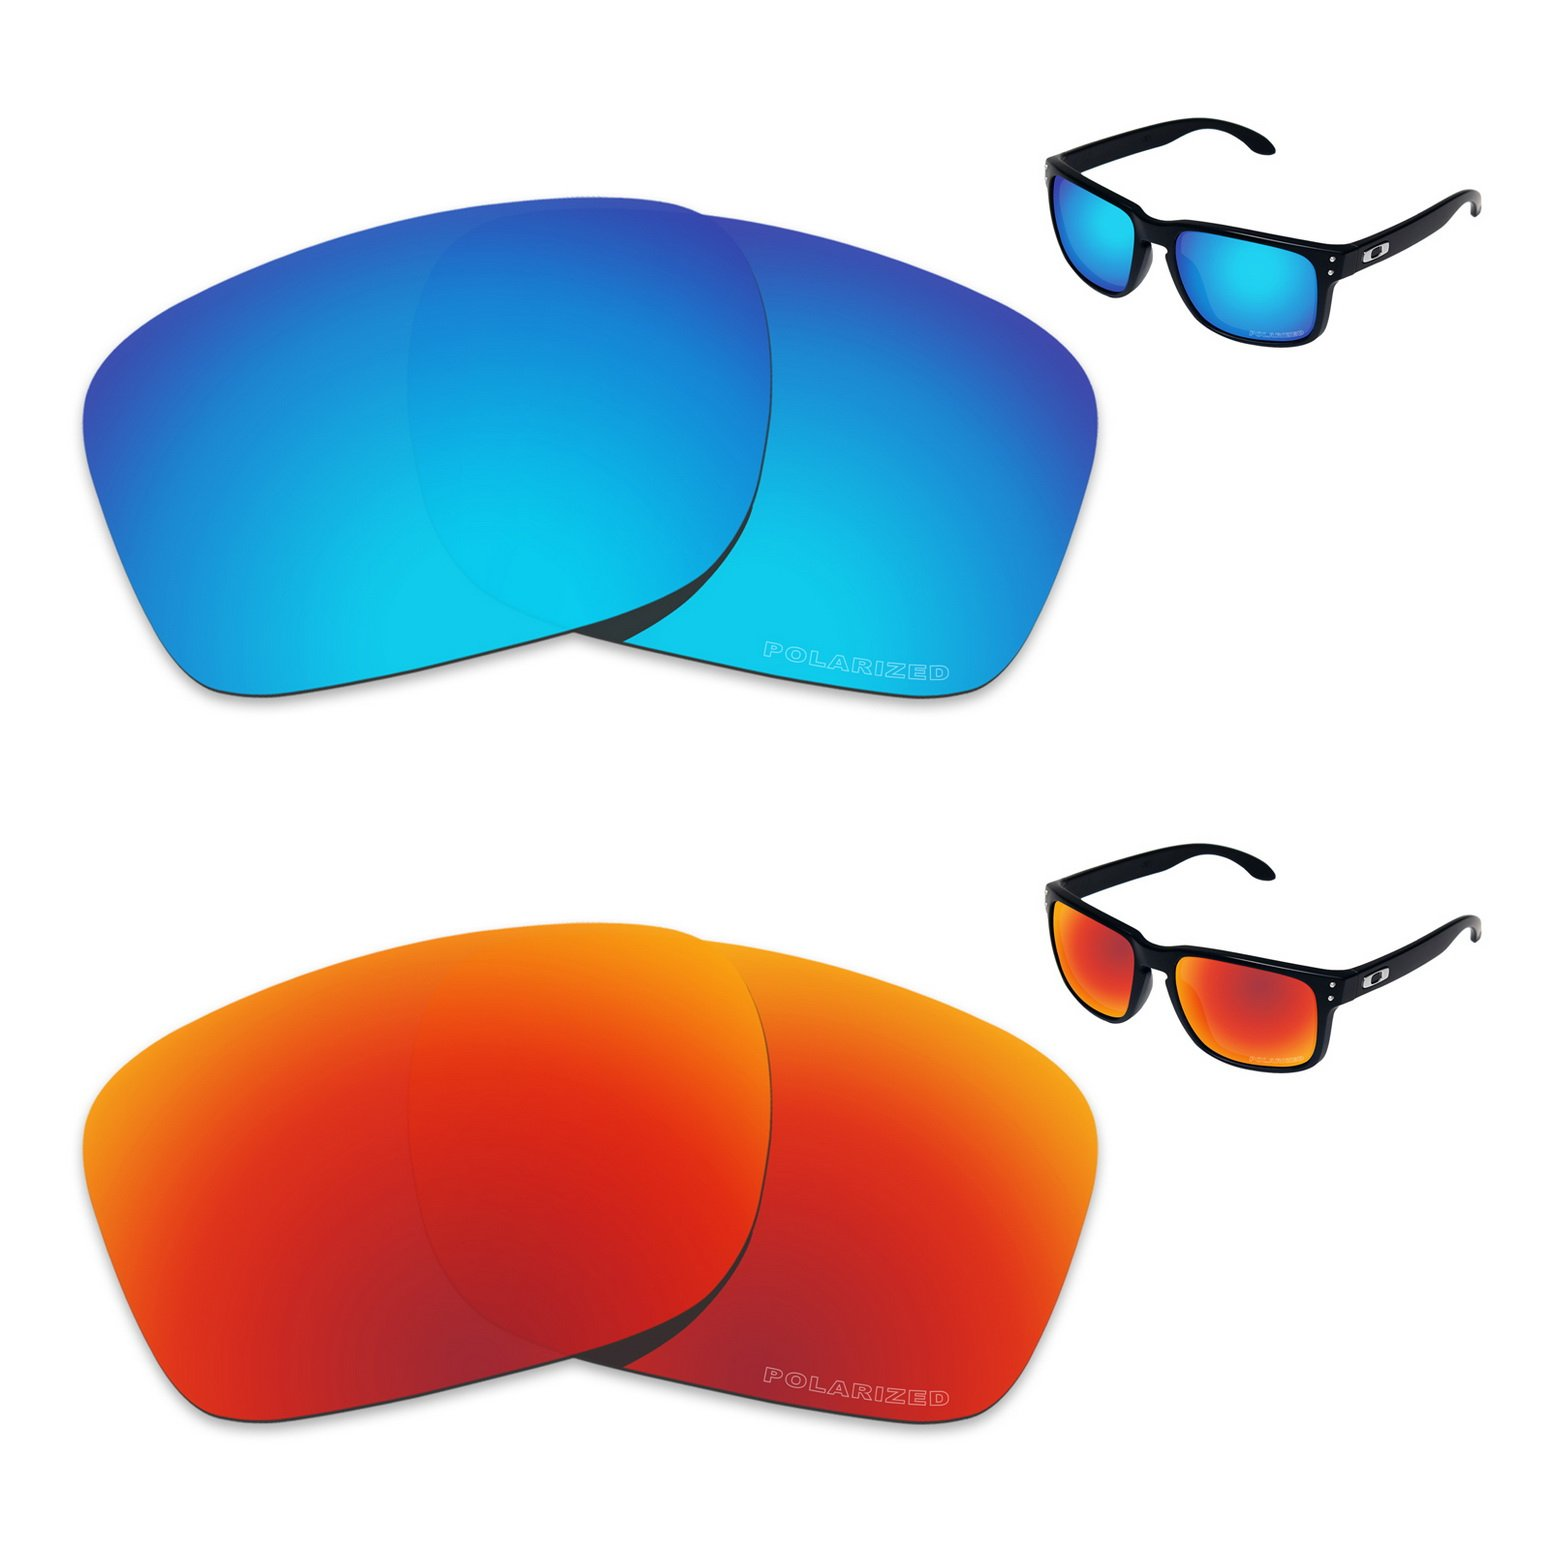 Tintart Performance Replacement Lenses for Oakley Holbrook Polarized Etched - Value Pack by Tintart